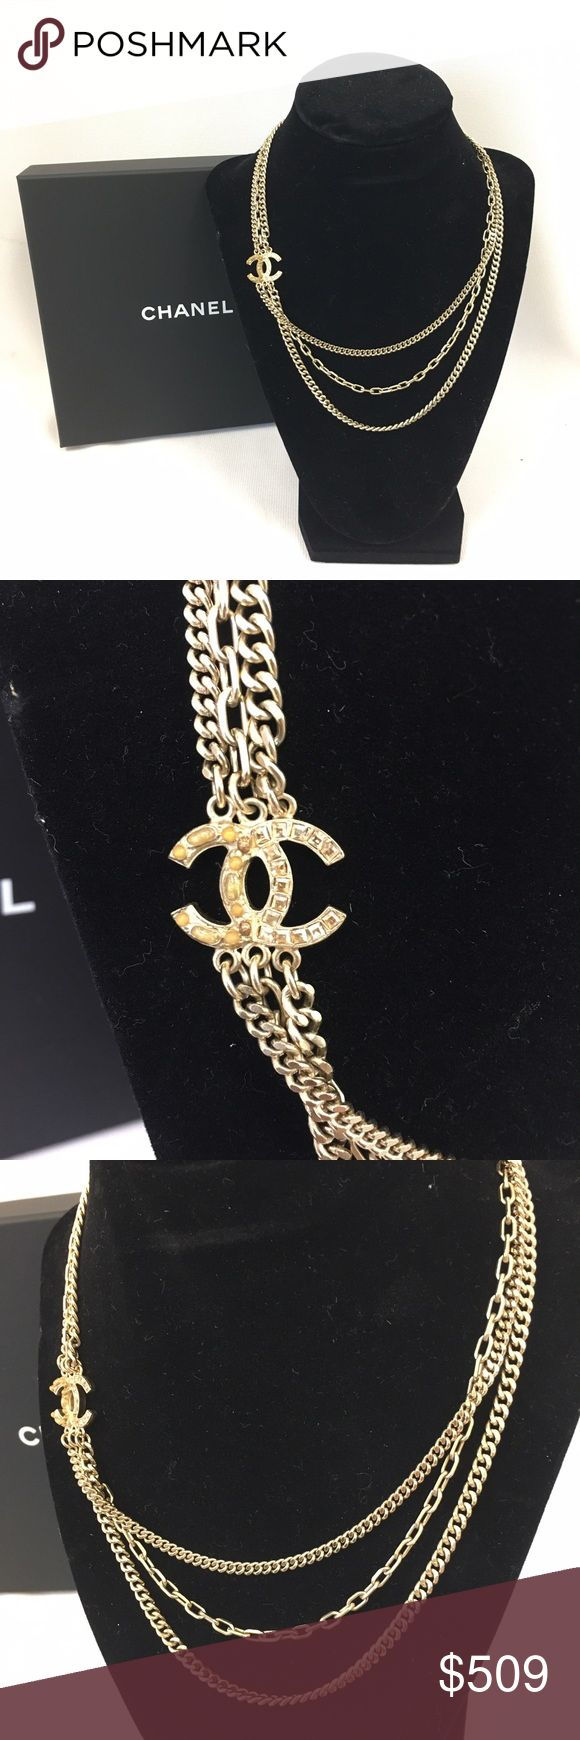 Chanel Gold Multi-chain Necklace Beautiful three strand mixed chain necklace with classic CC emblem. The CC is a mix of stones and diamonds. This is 100% authentic and from my personal collection. We purchased it in November at the Wynn in Las Vegas. It has only been worn twice and is in like new condition. Includes original box and protective sleeve. Note the original price tag as well. CHANEL Jewelry Necklaces